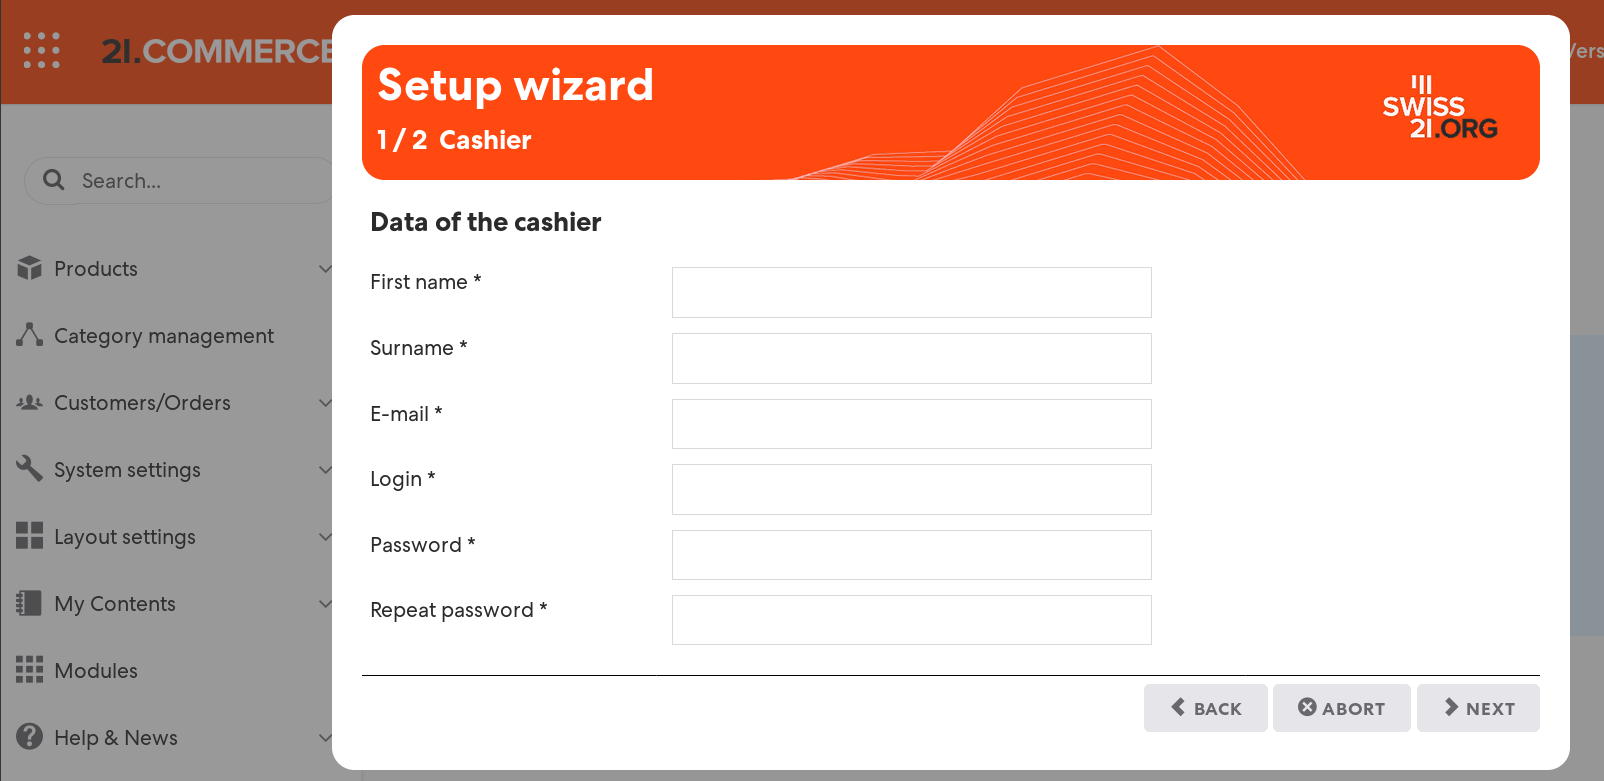 Figure 2: Enter the required data of your cash register user (cashier)